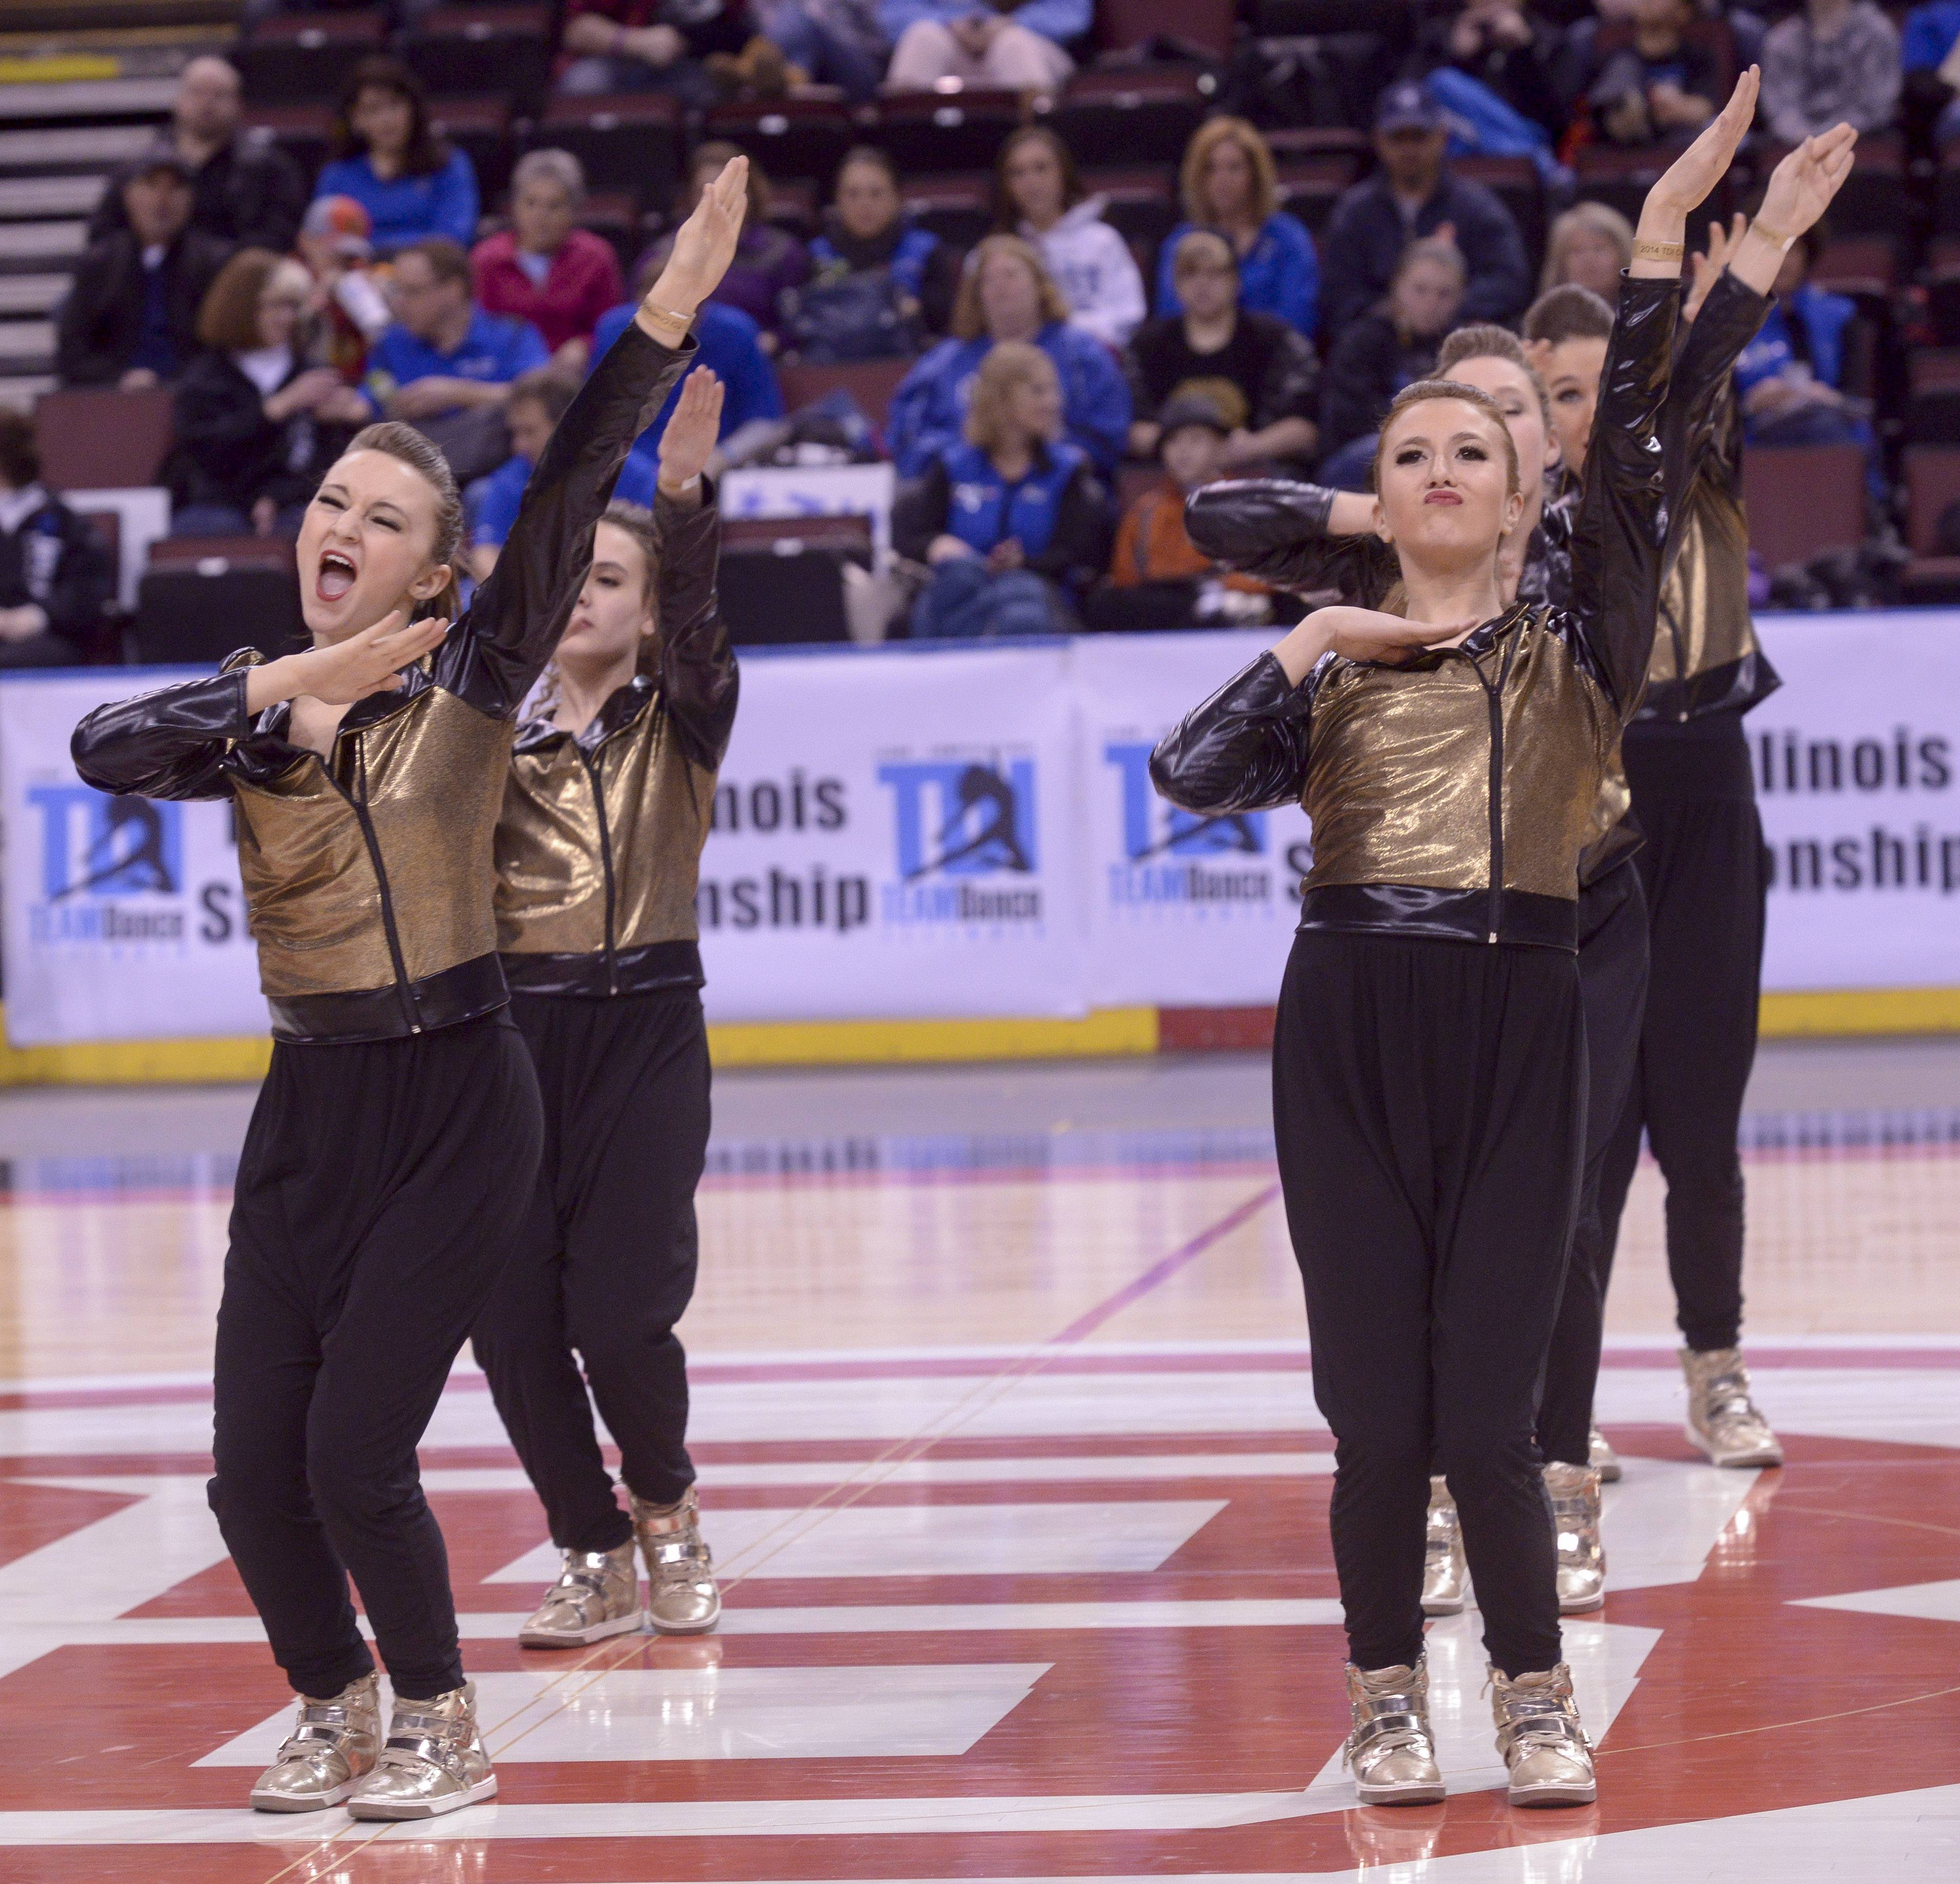 Batavia High School performs in the 2A Hip Hop category during the TEAMDance Illinois 2014 Grand Championship in Peoria, Sunday March 2nd.